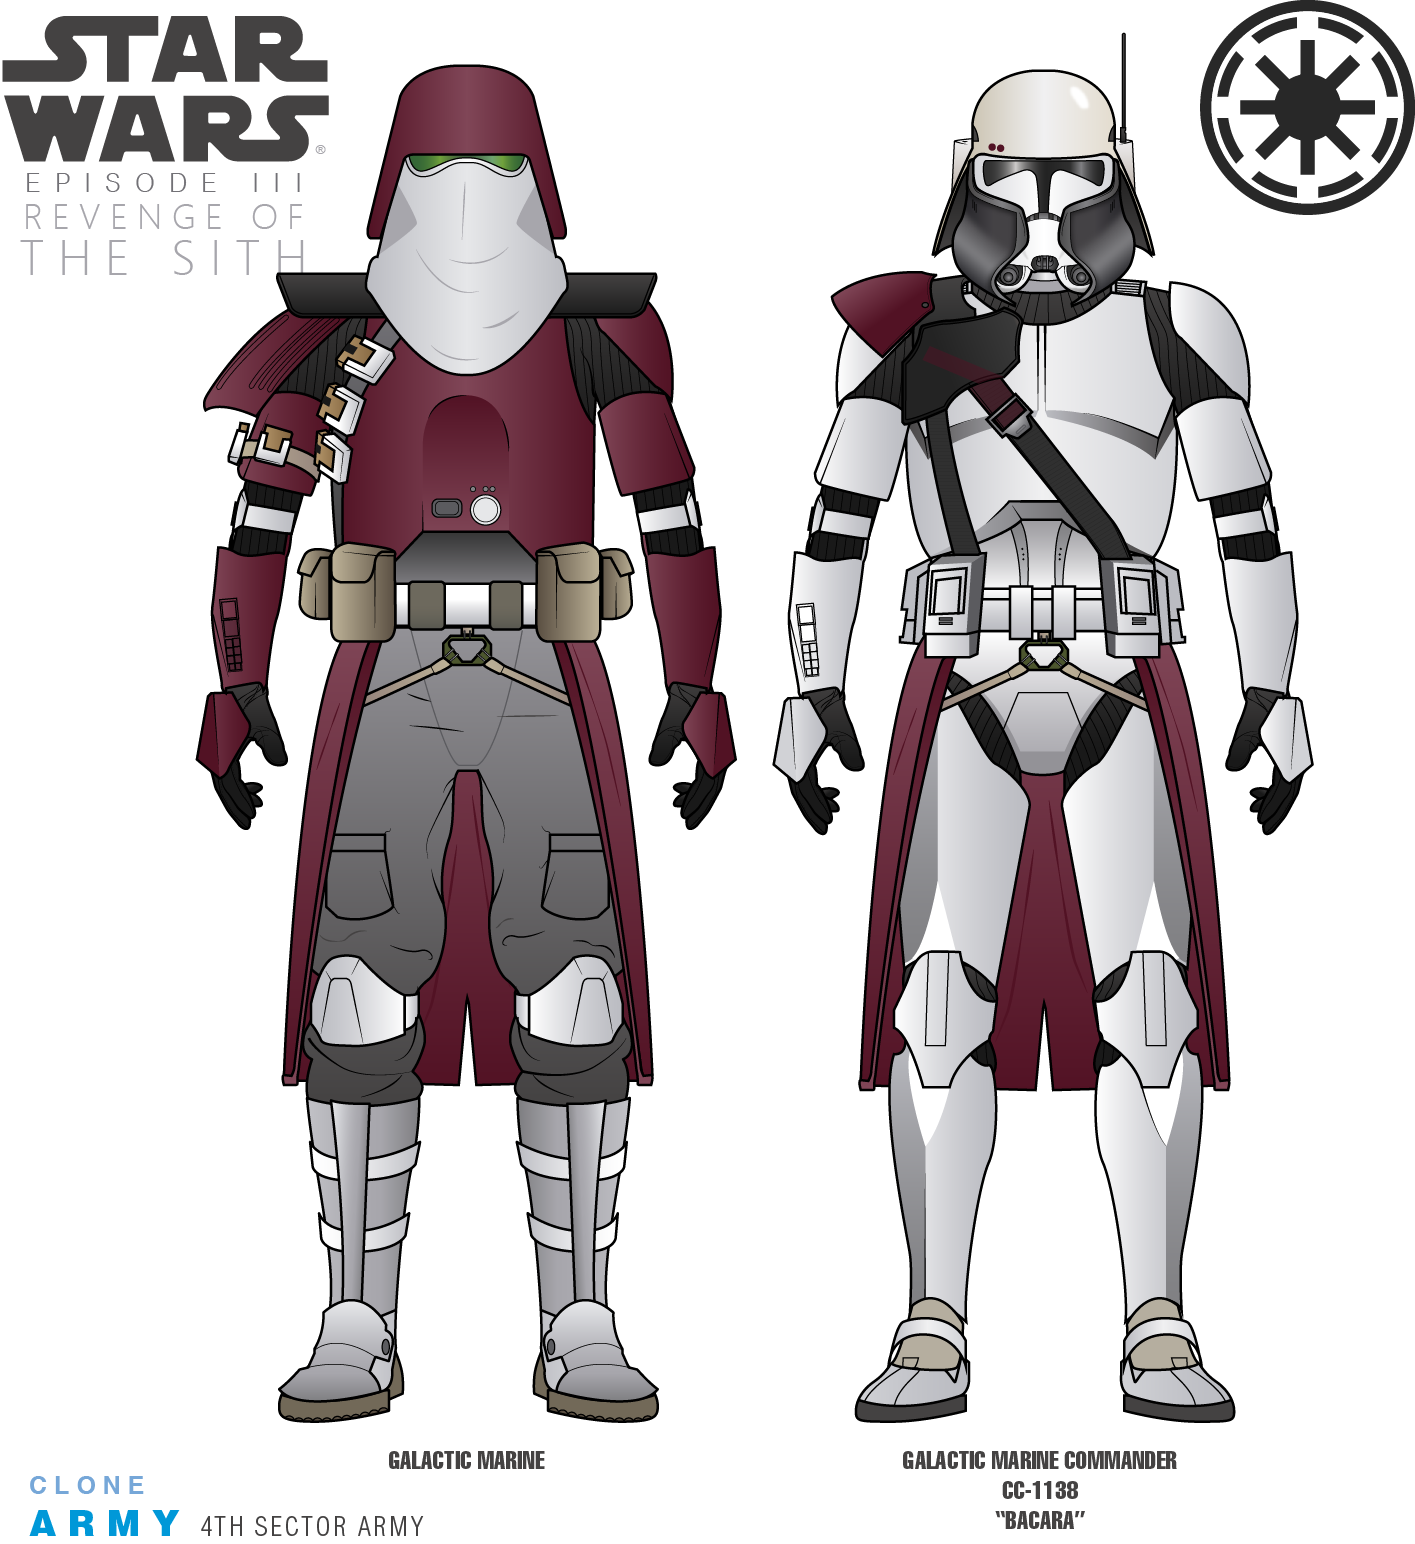 4th Sector Army Galactic Marines By Efrajoey1 Star Wars Outfits Star Wars Fandom Star Wars Clone Wars